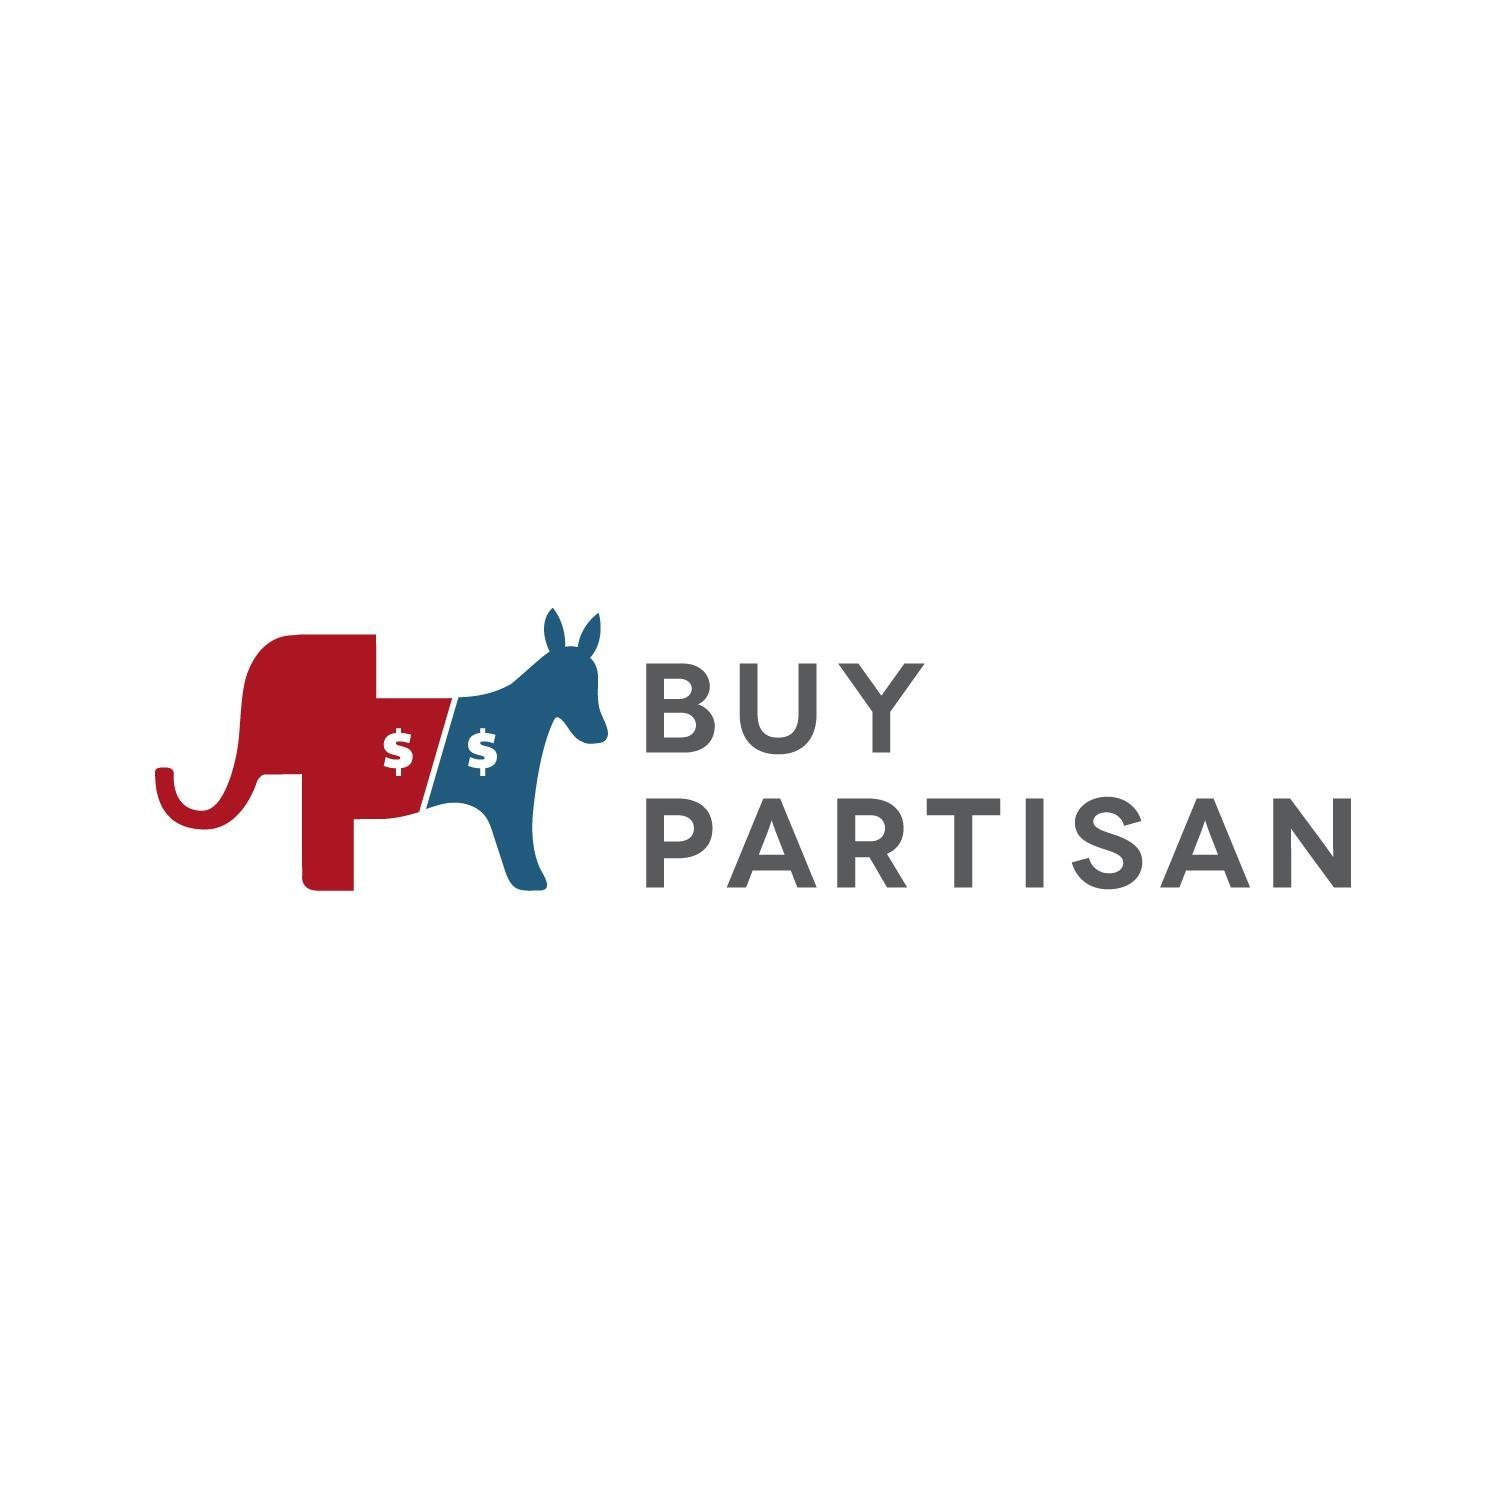 Buy Partisan